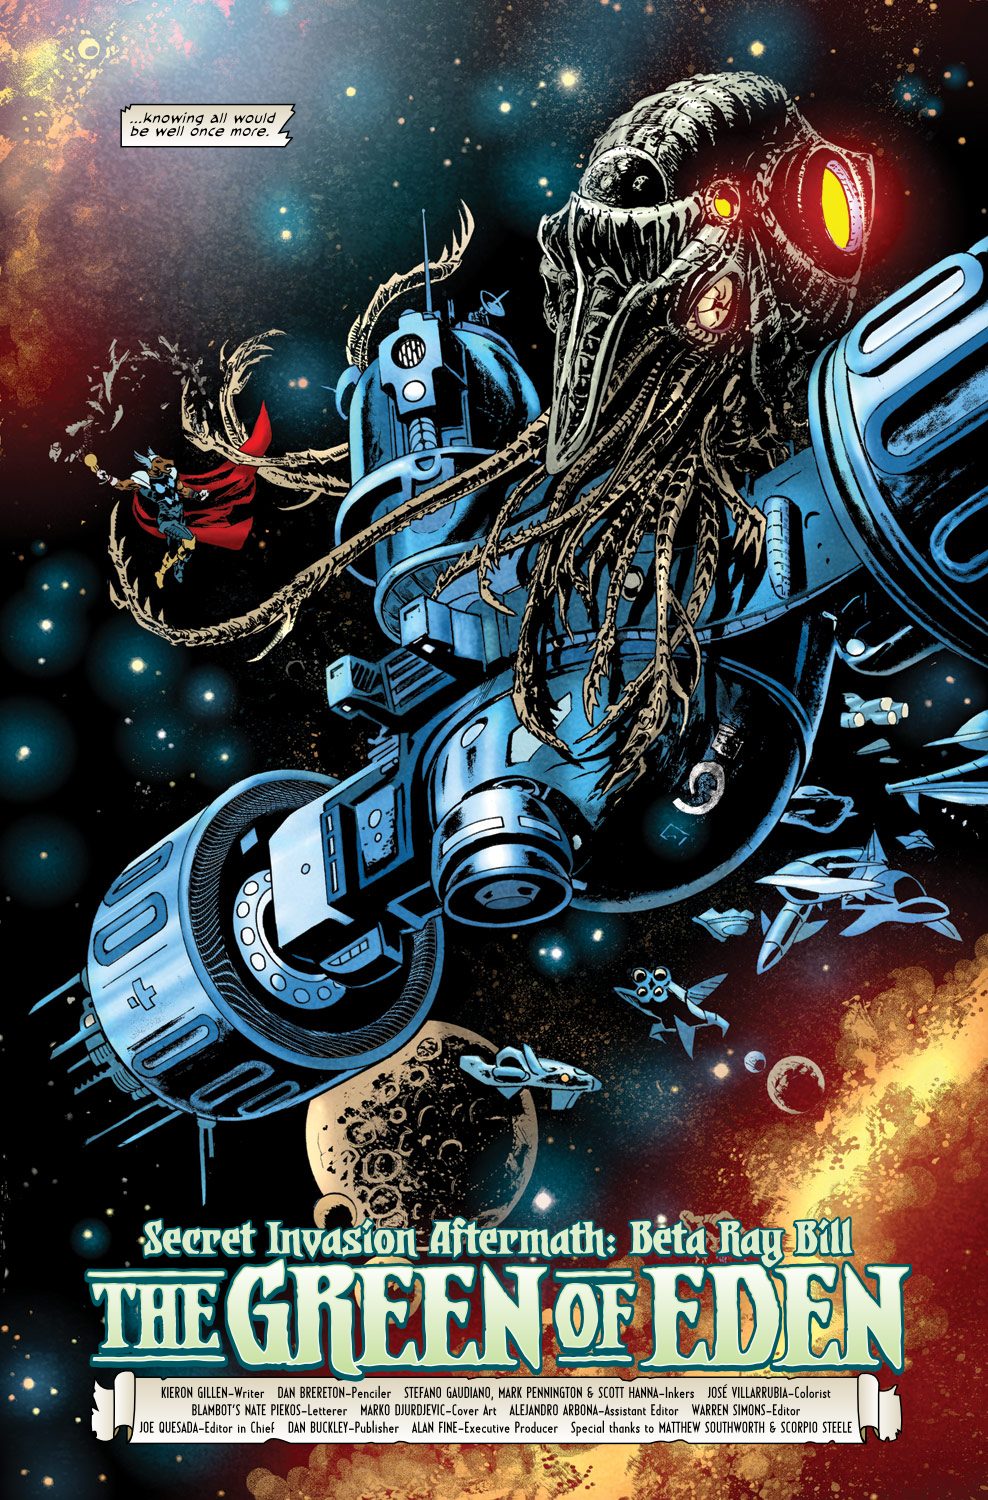 Read online Secret Invasion Aftermath: Beta Ray Bill - The Green of Eden comic -  Issue # Full - 4